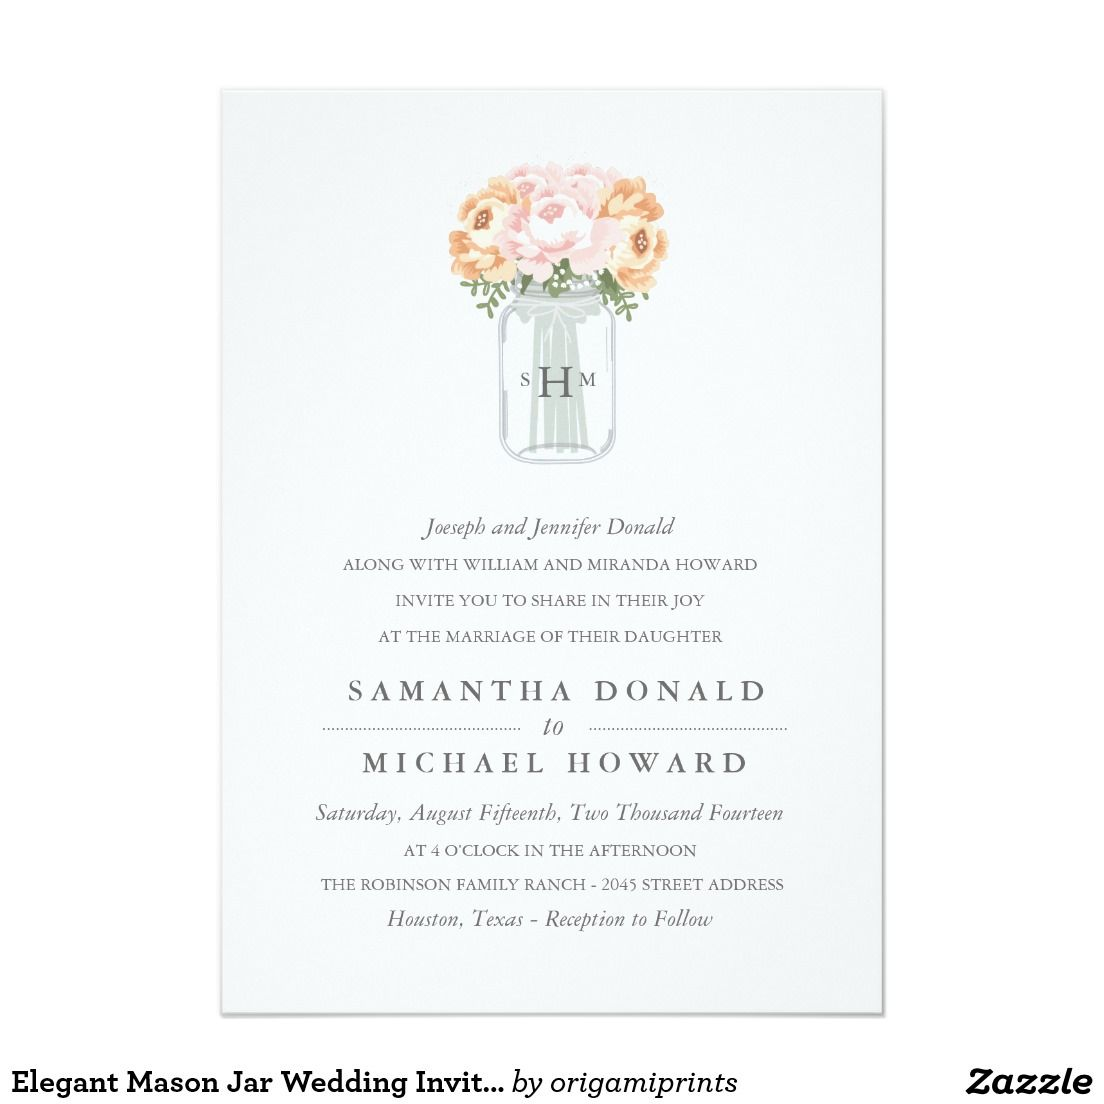 Elegant Mason Jar Wedding Invitations Mason Jar Wedding